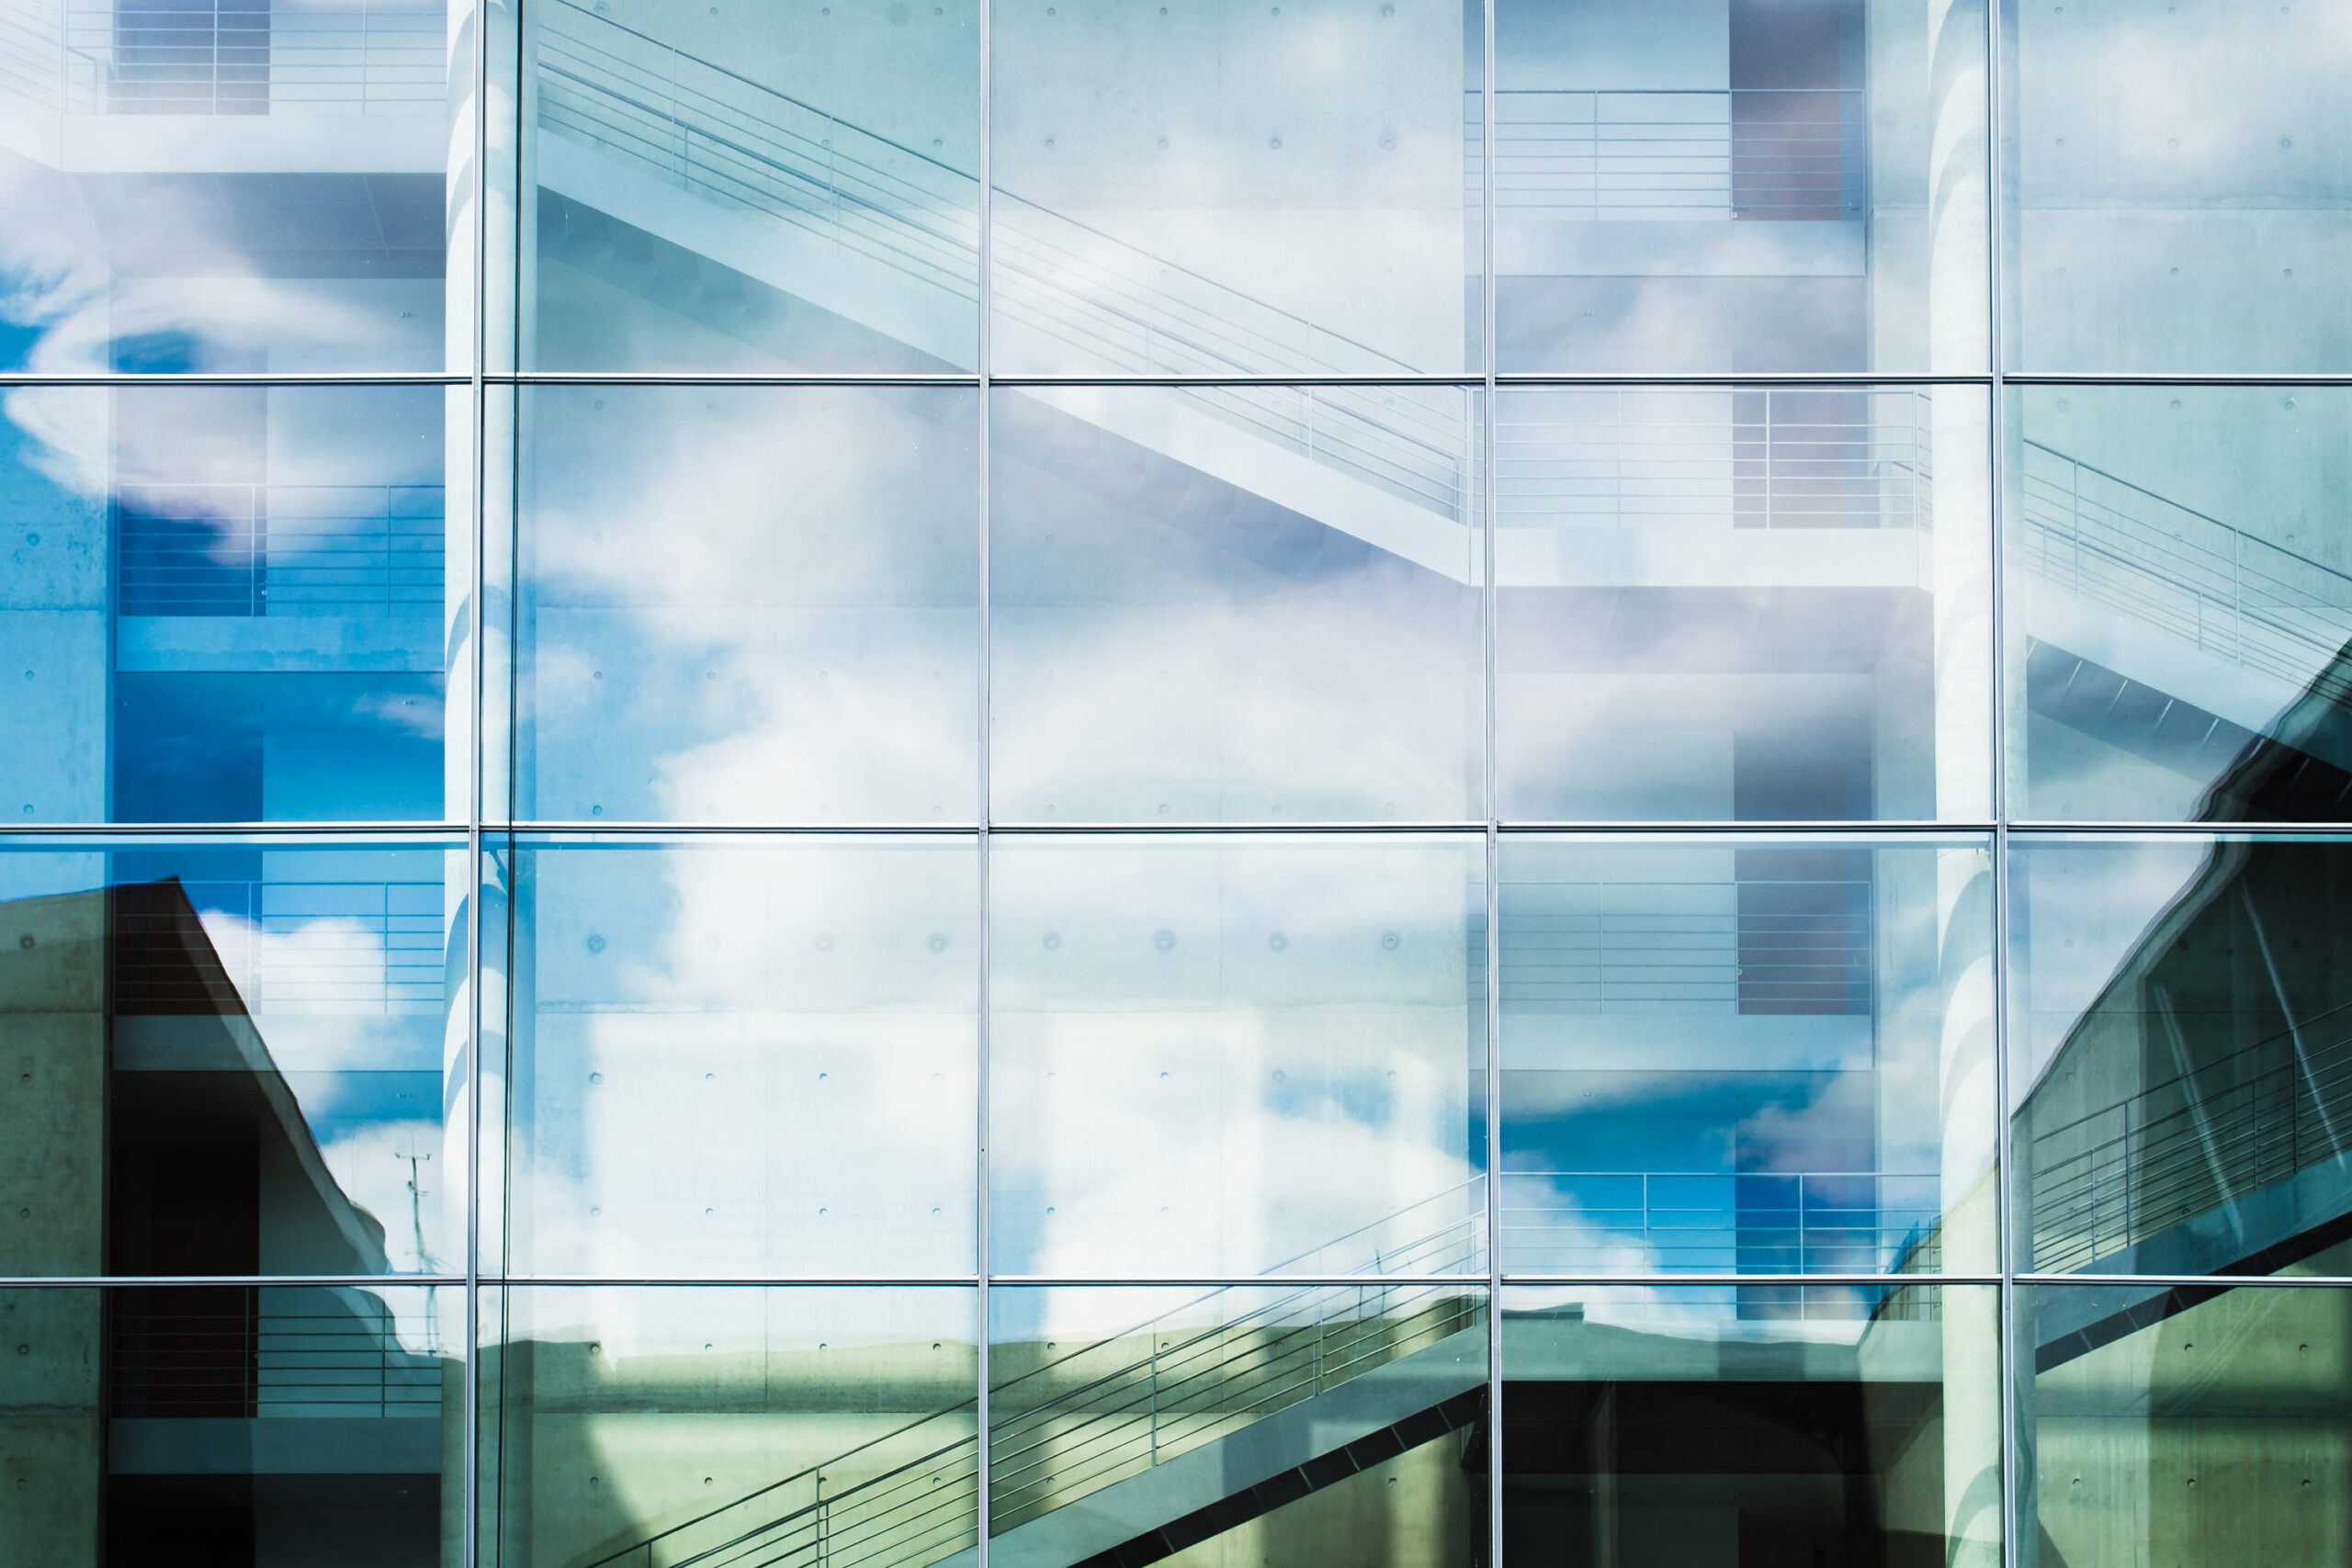 Photo of clouds and blue sky reflected in a clean glass window